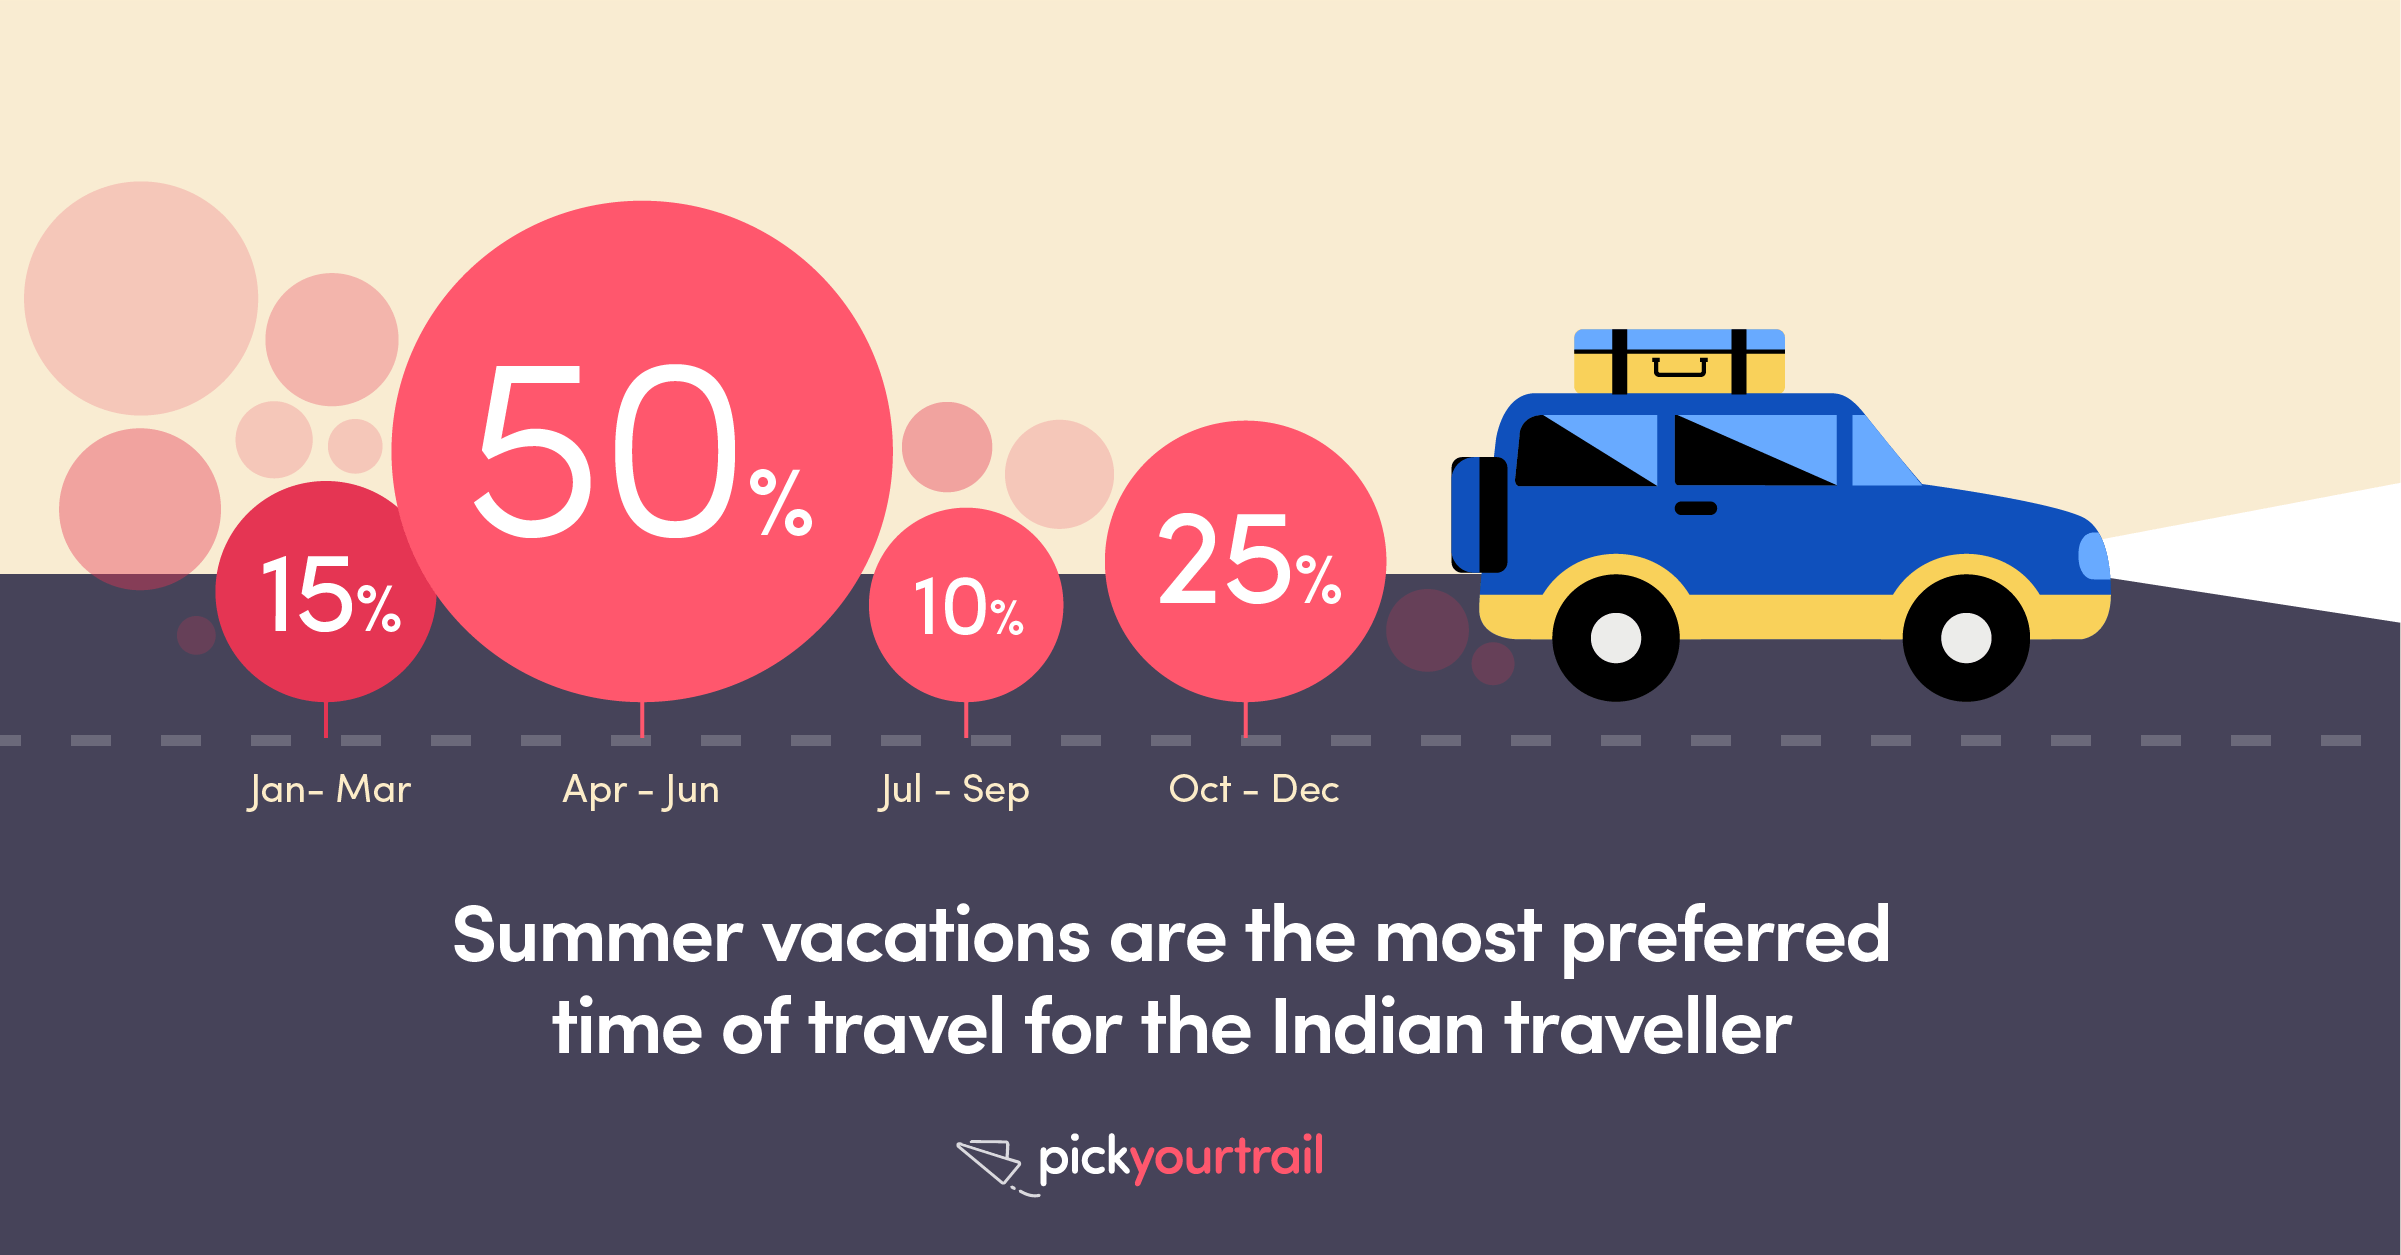 We love summers! Nearly 50% of Indian travellers prefer to go on their international vacation between April and June.